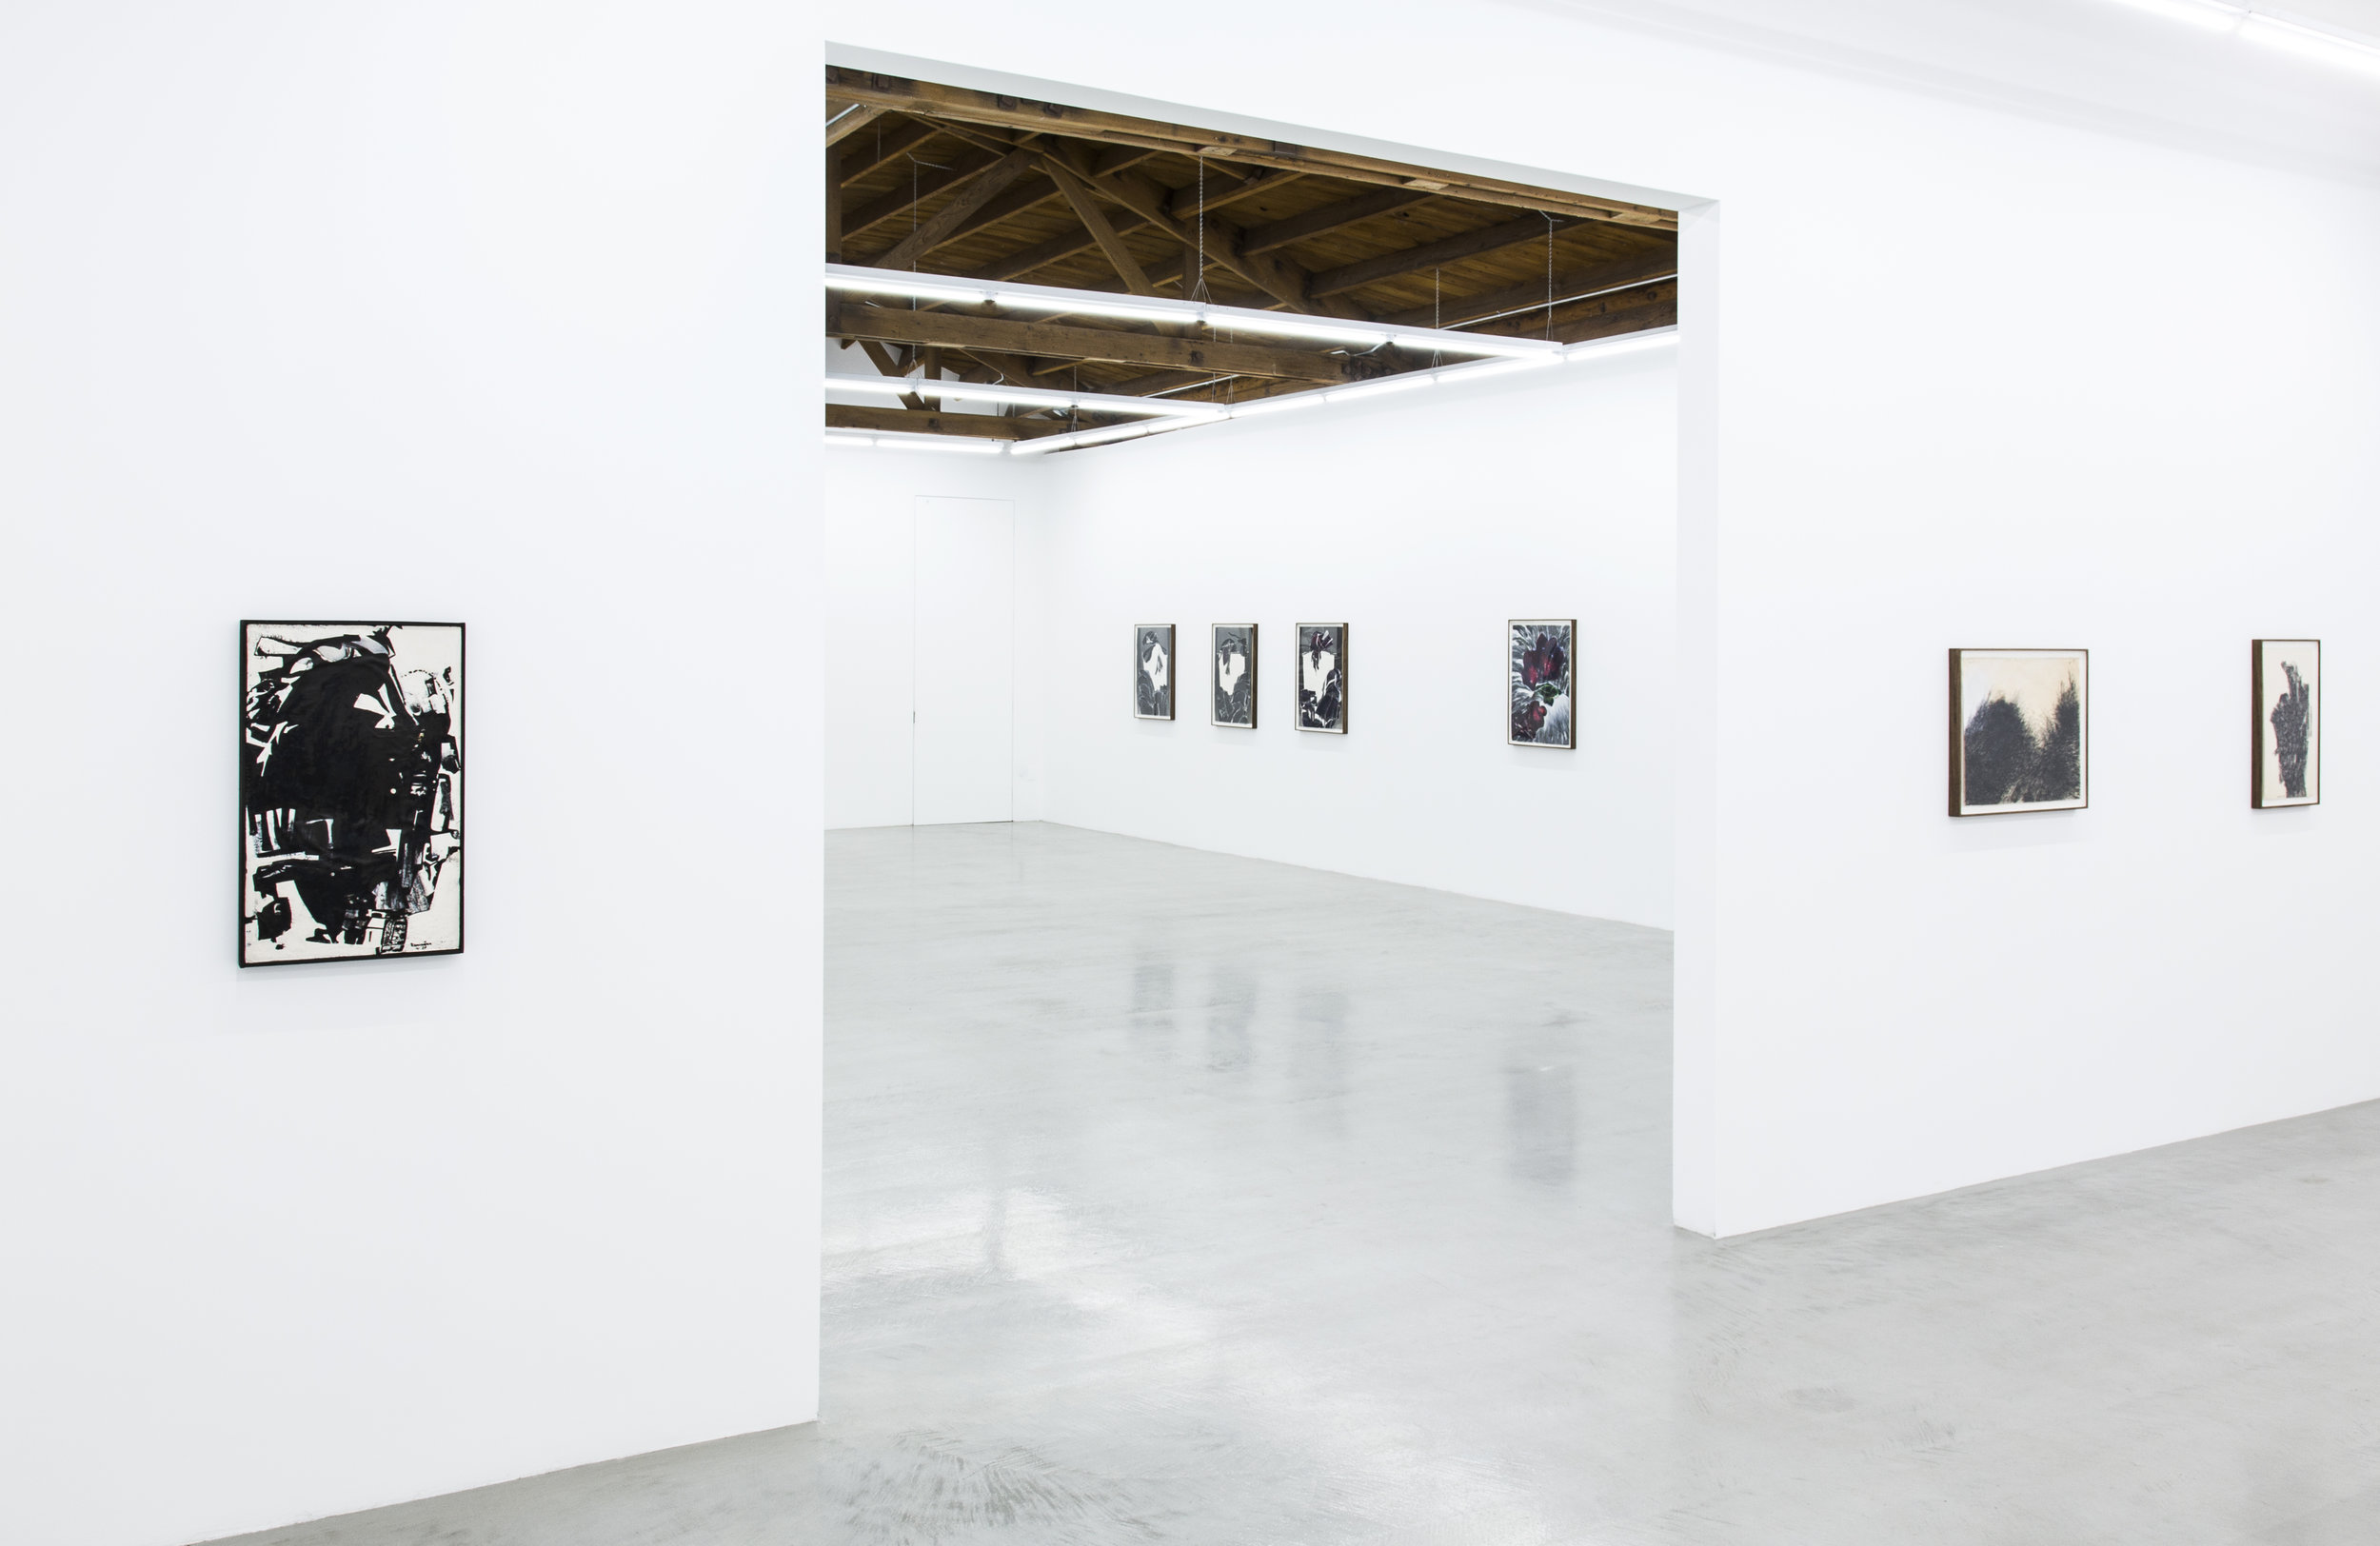 Installation view of Deborah Remington's works on paper